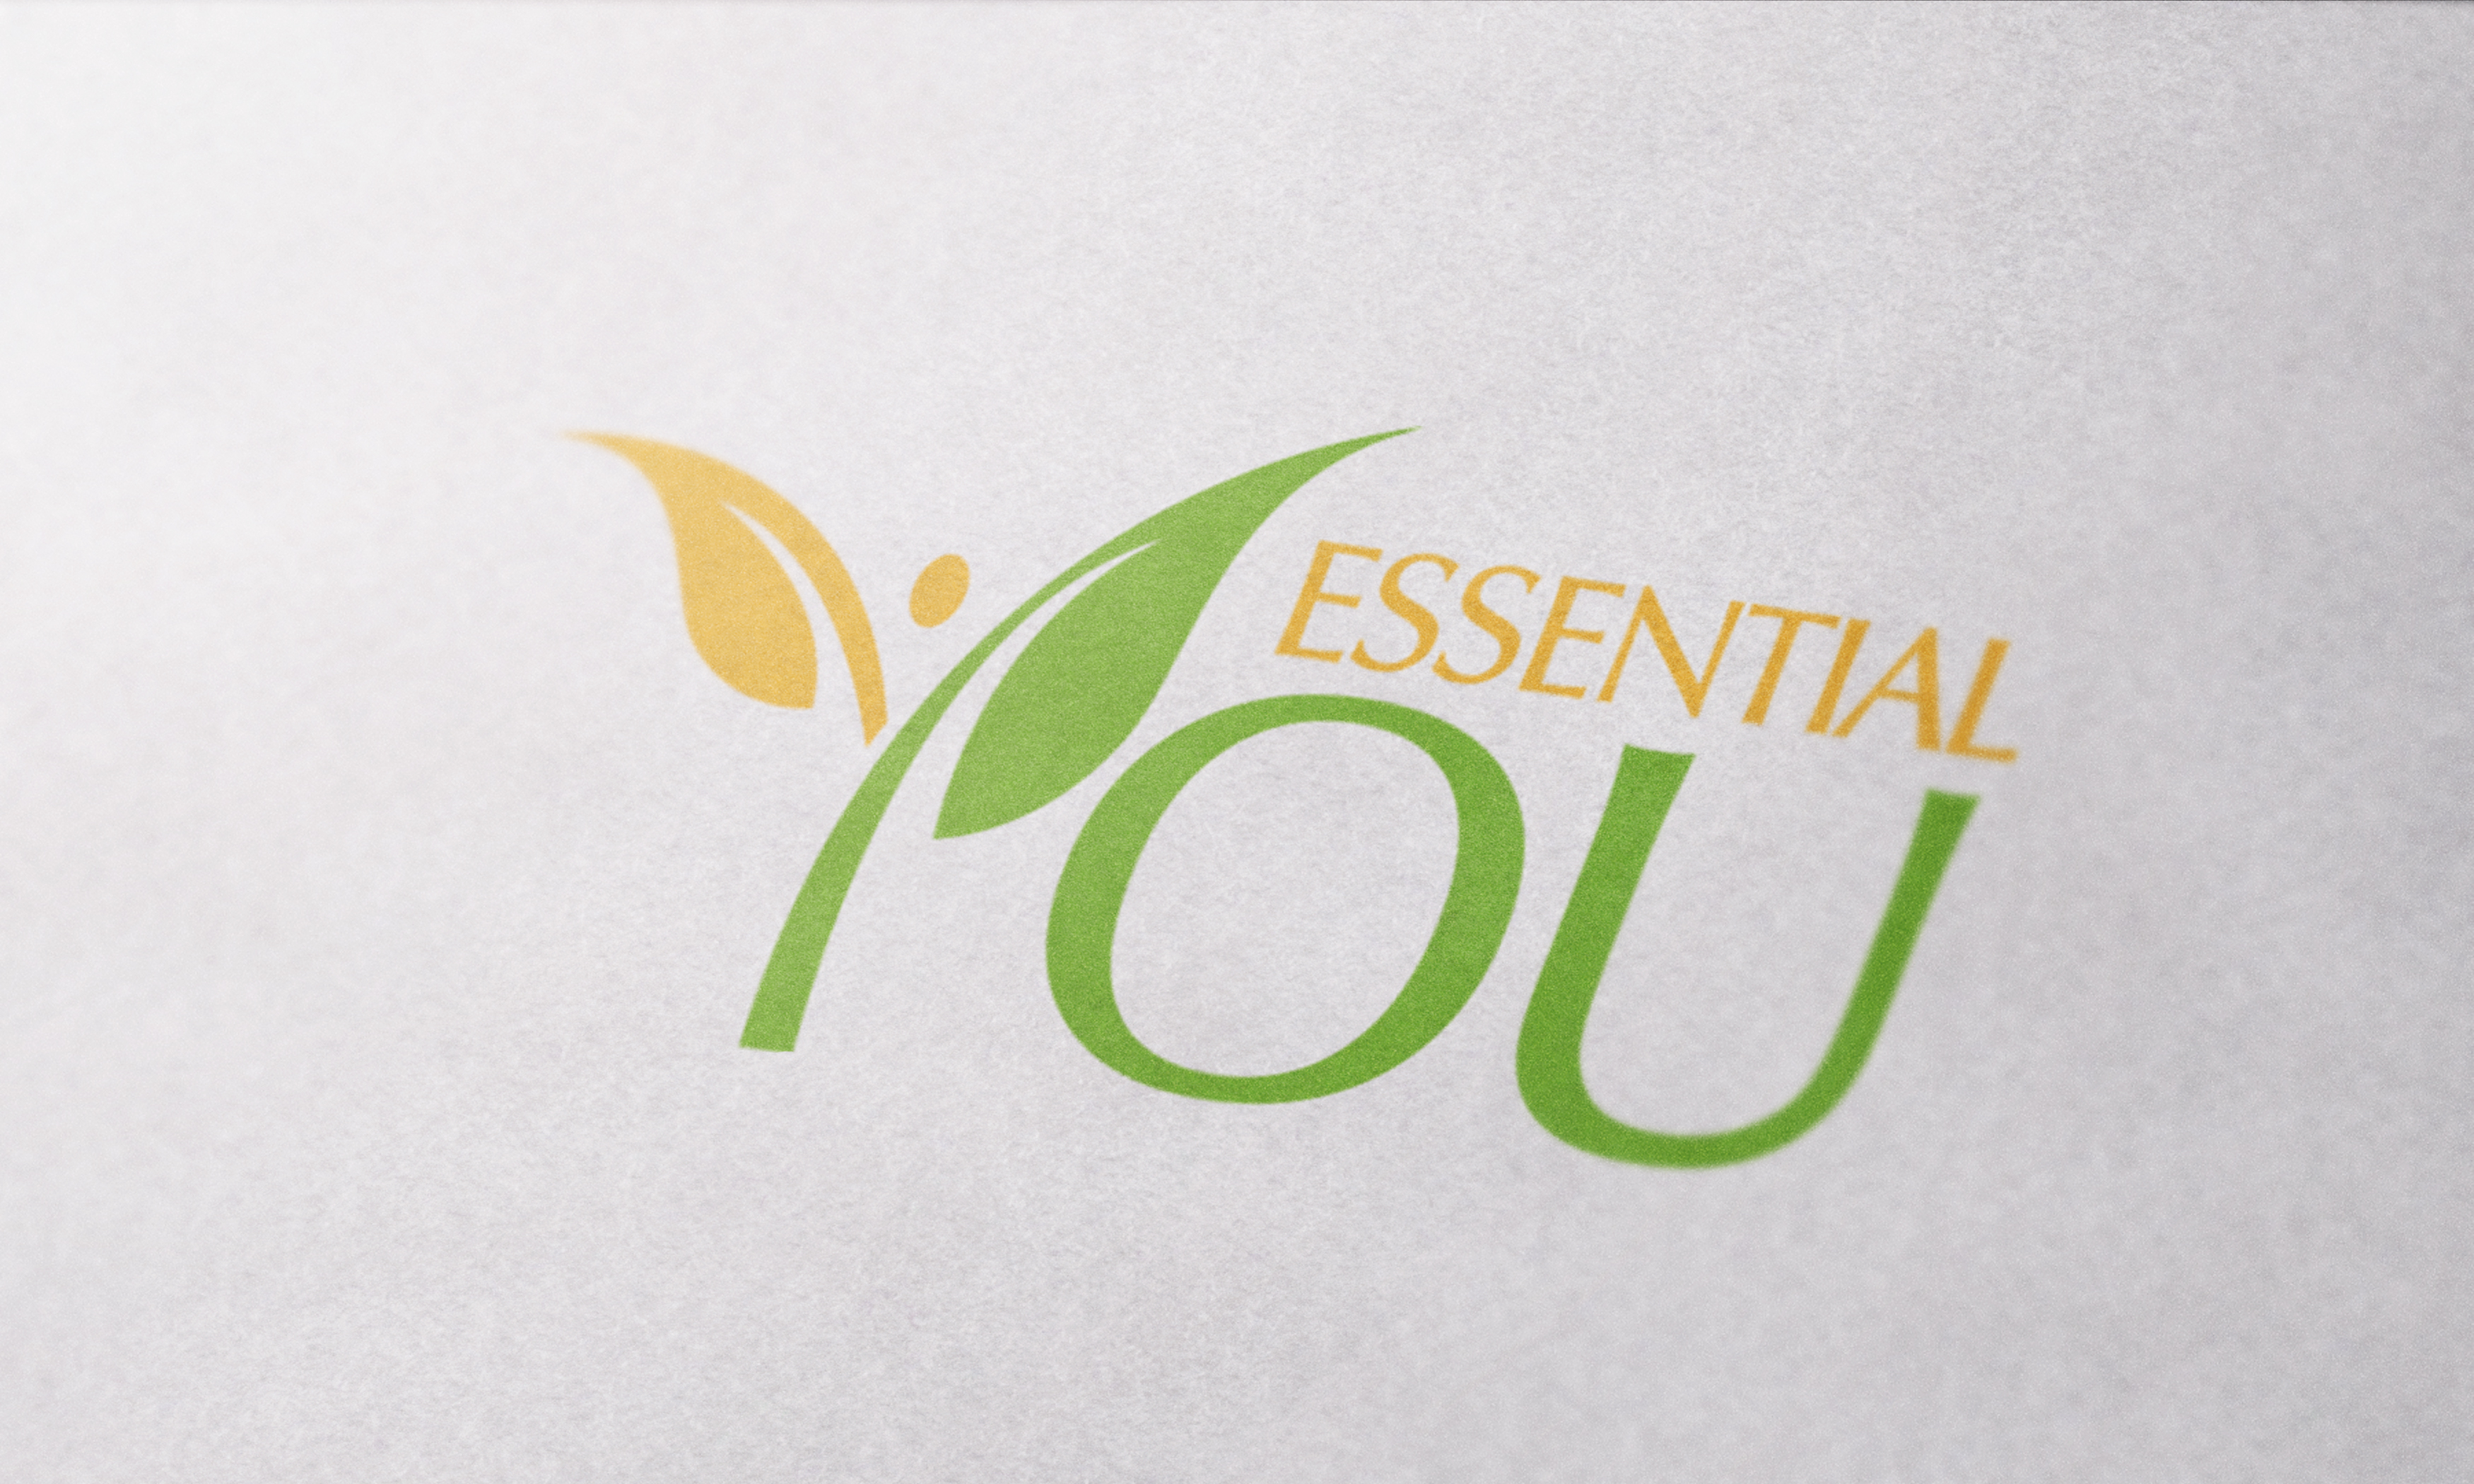 The Essential You